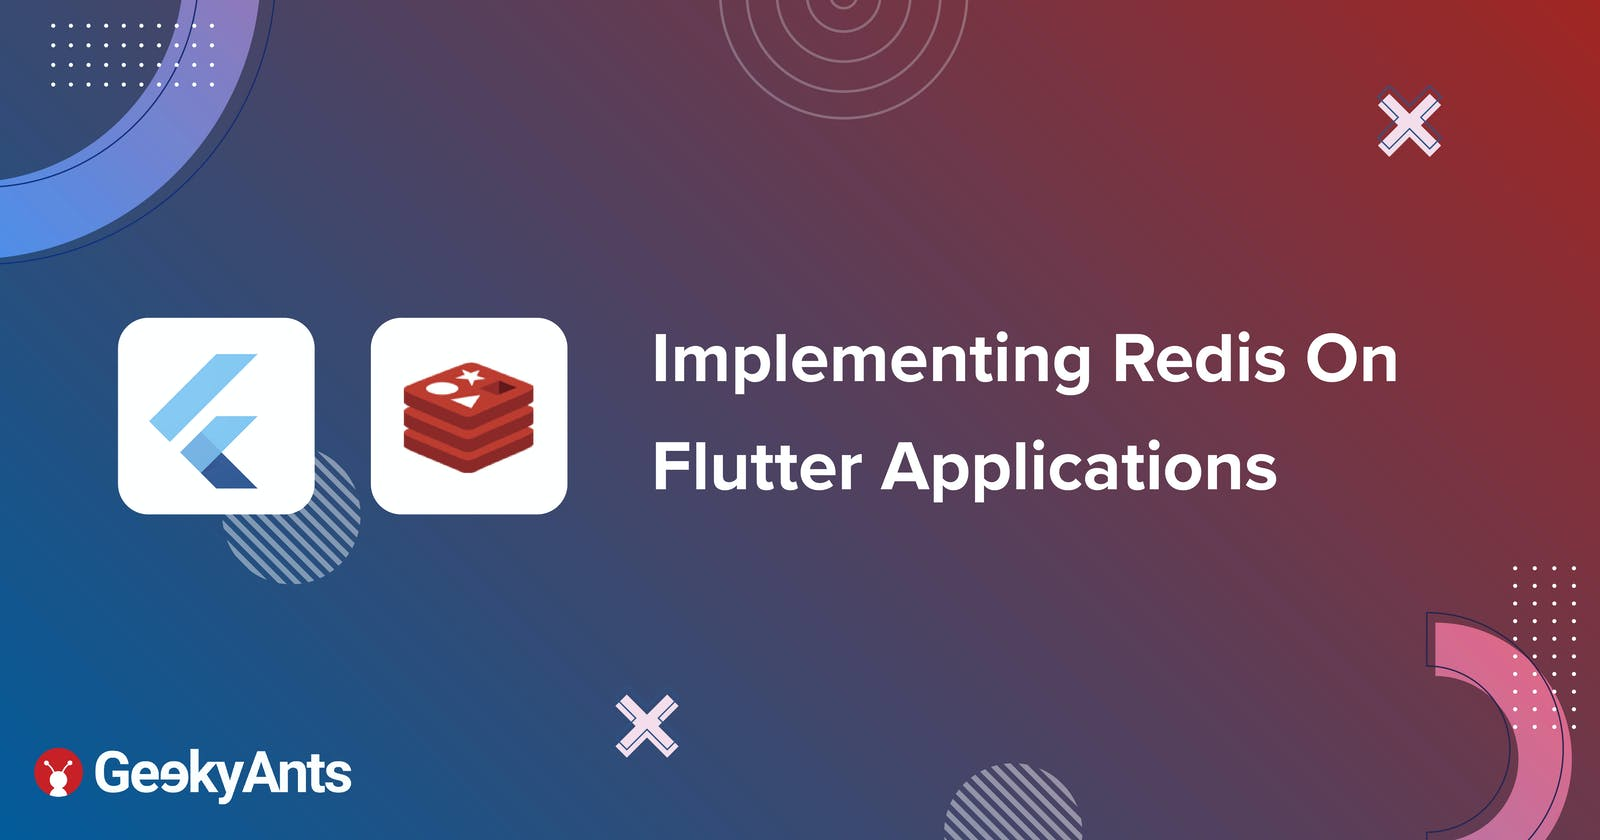 Implementing Redis On Flutter Applications